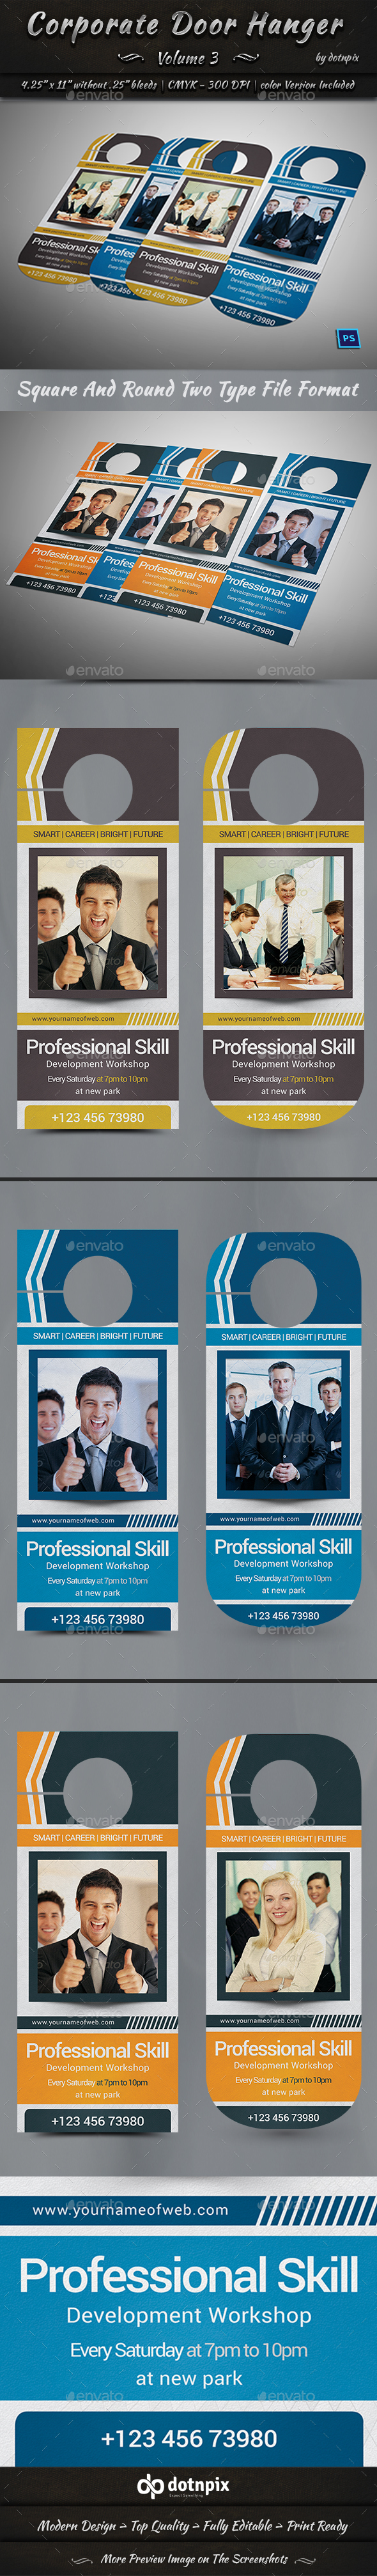 Corporate Door Hanger - V3 - Miscellaneous Print Templates